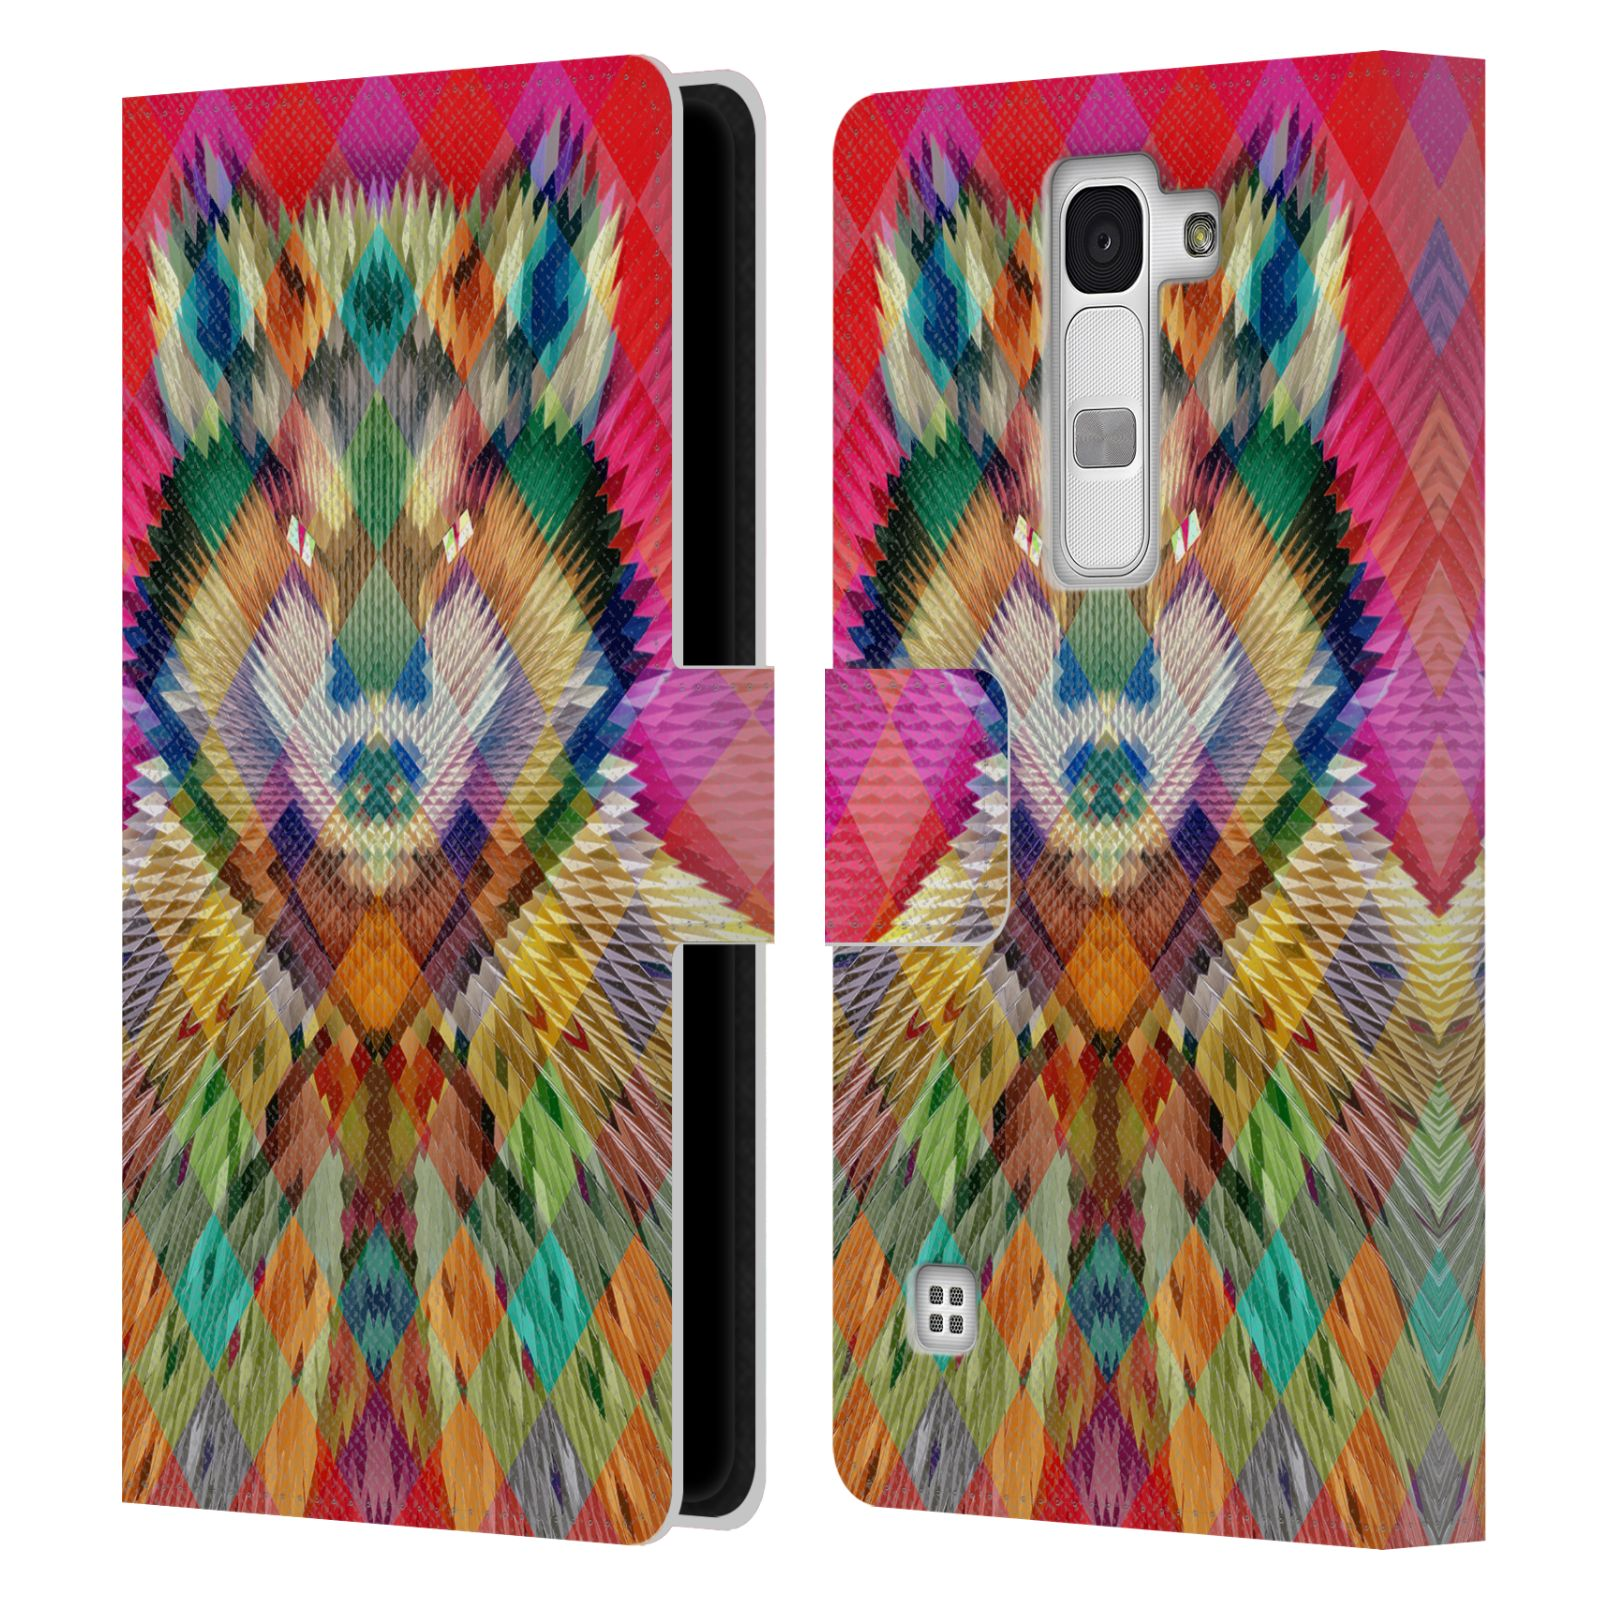 OFFICIAL-ALI-GULEC-GEOMETRIC-LEATHER-BOOK-WALLET-CASE-COVER-FOR-LG-PHONES-2